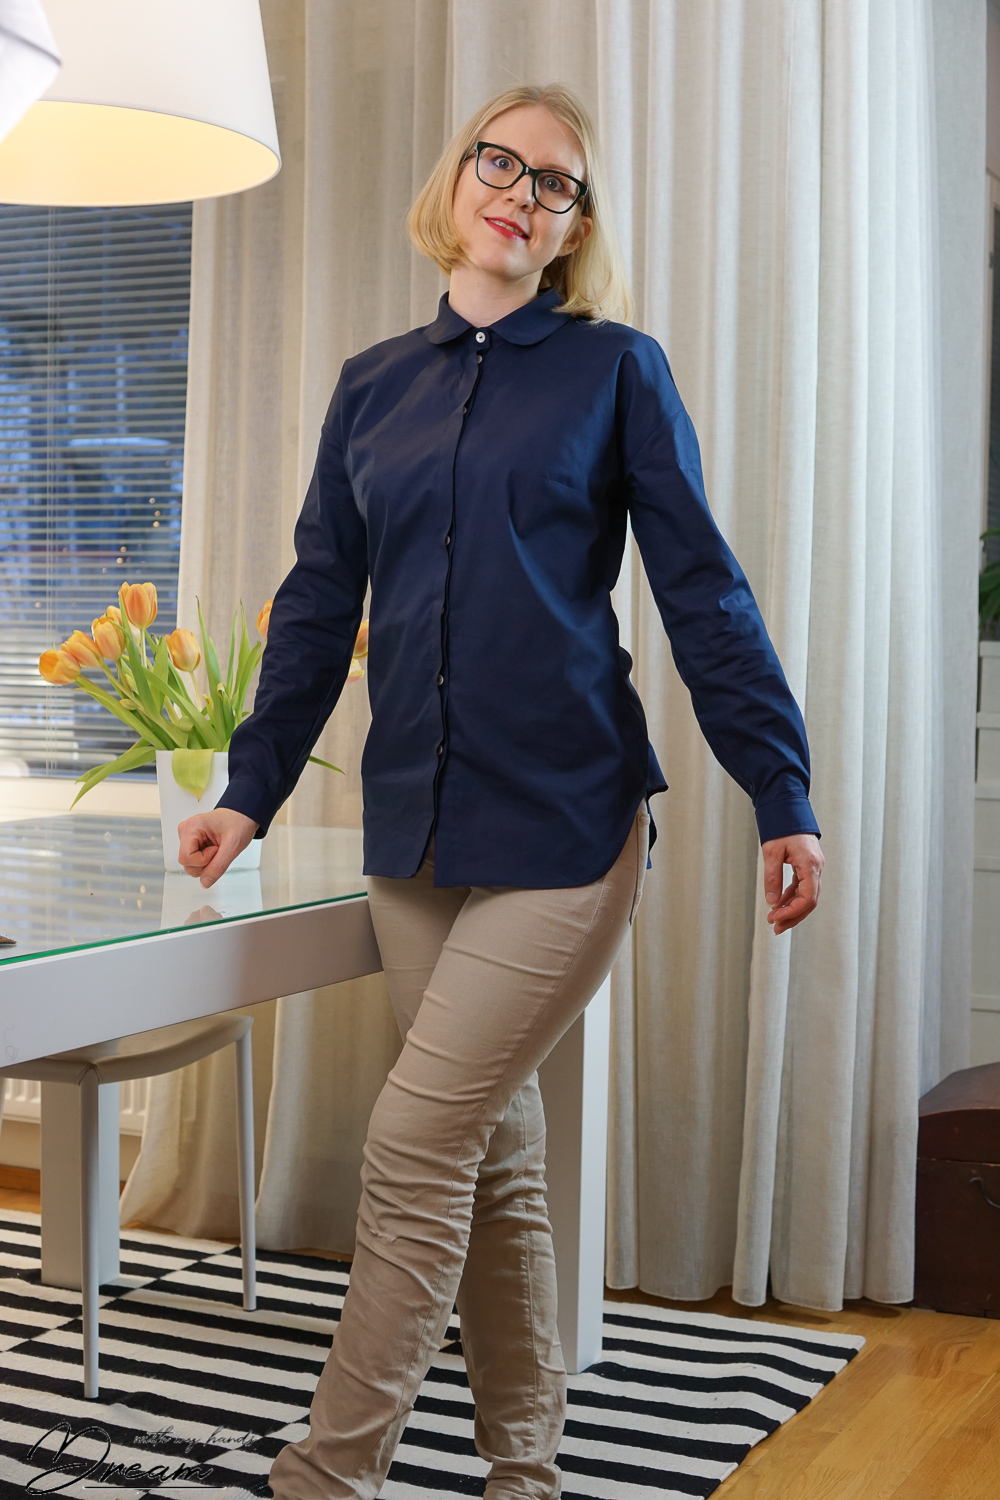 My blue Mélilot blouse by Deer & Doe.